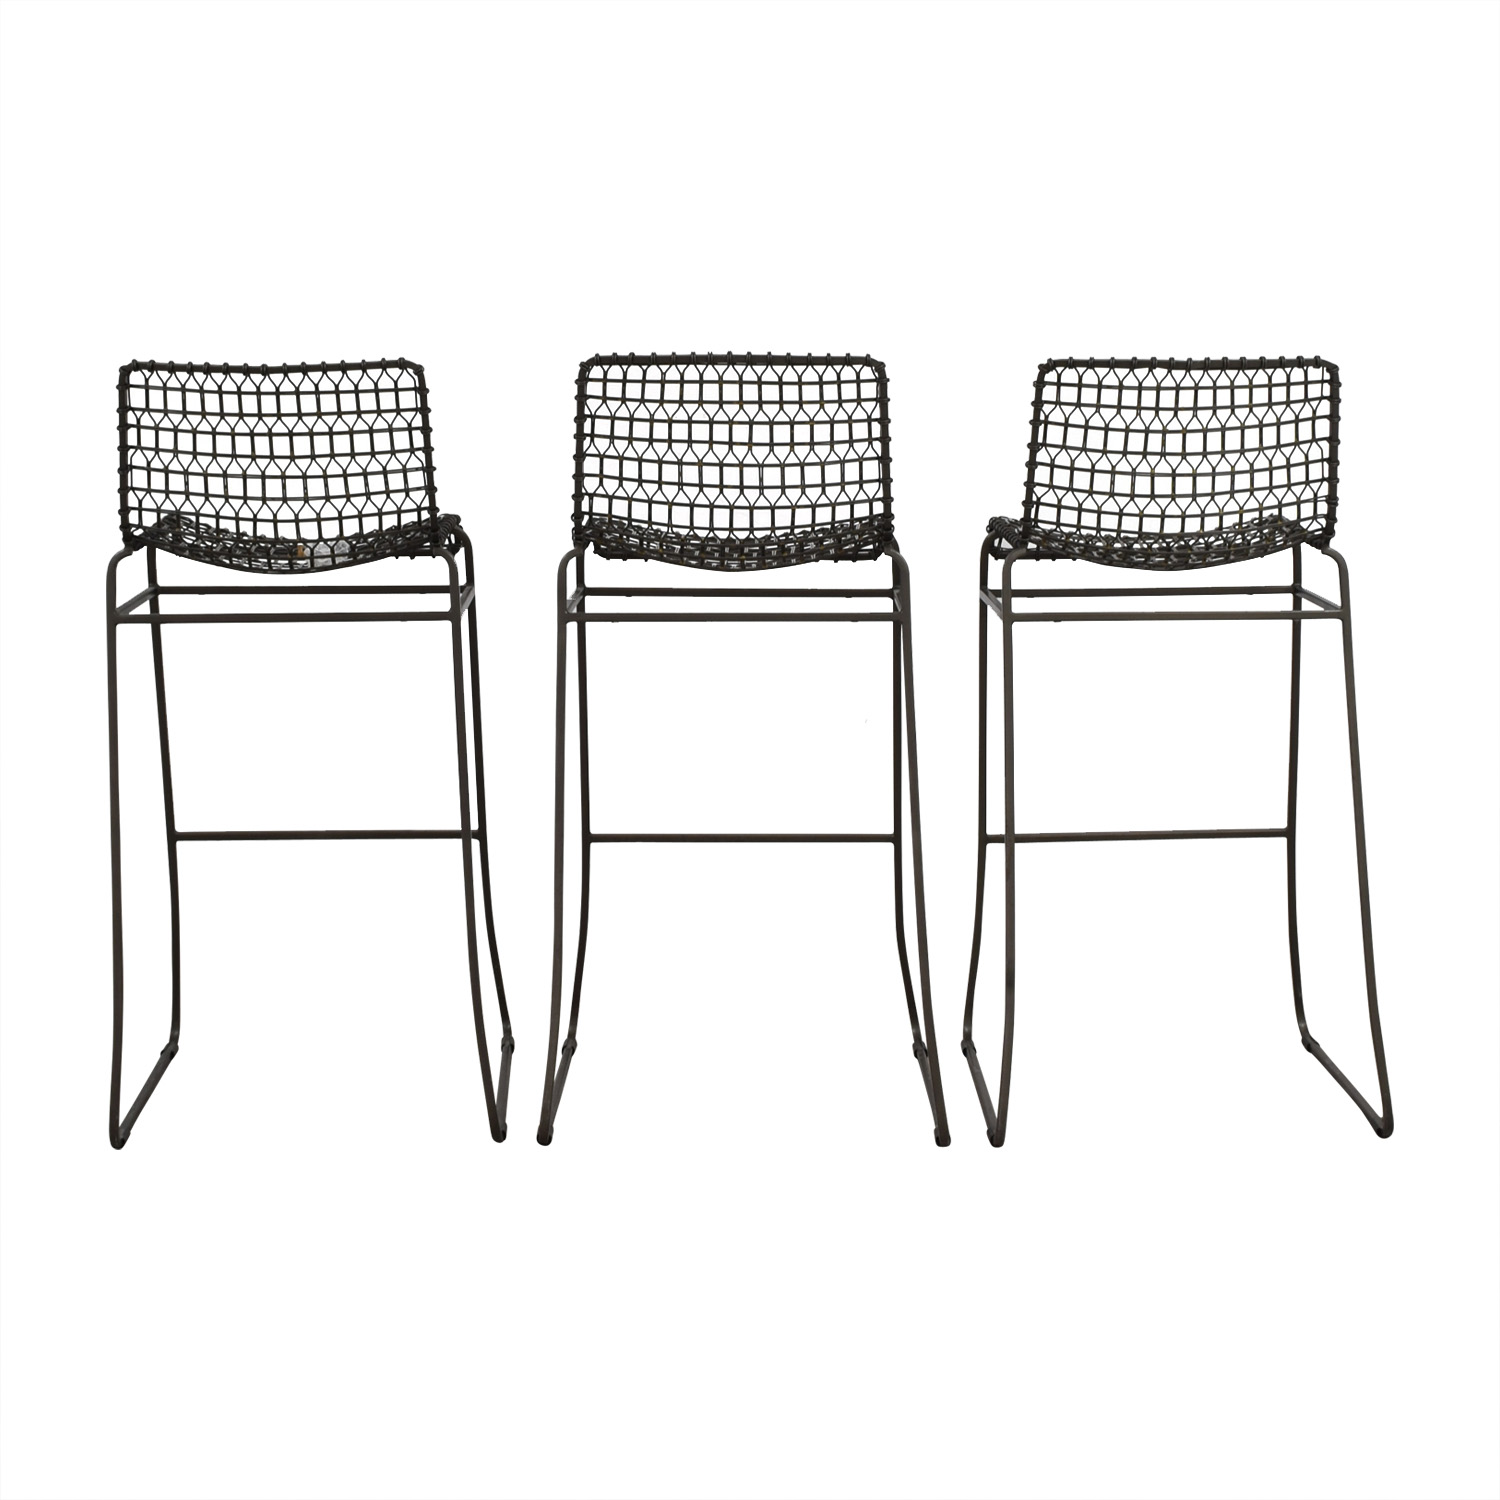 Crate & Barrel Crate & Barrel Metal Bar Stools nj